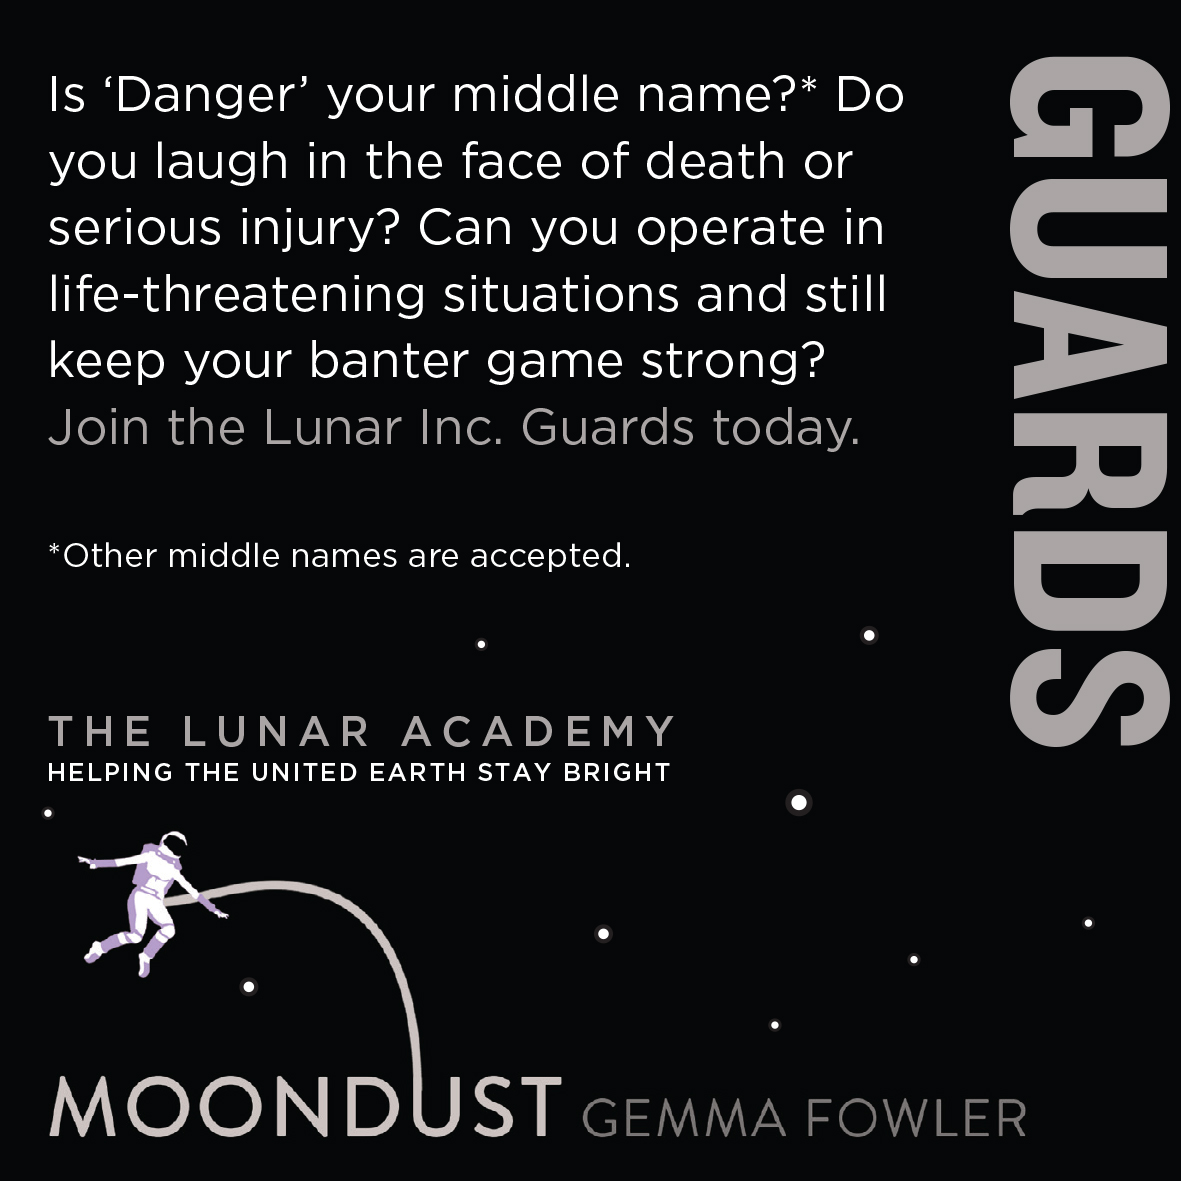 Moondust wanted ads 1.jpg